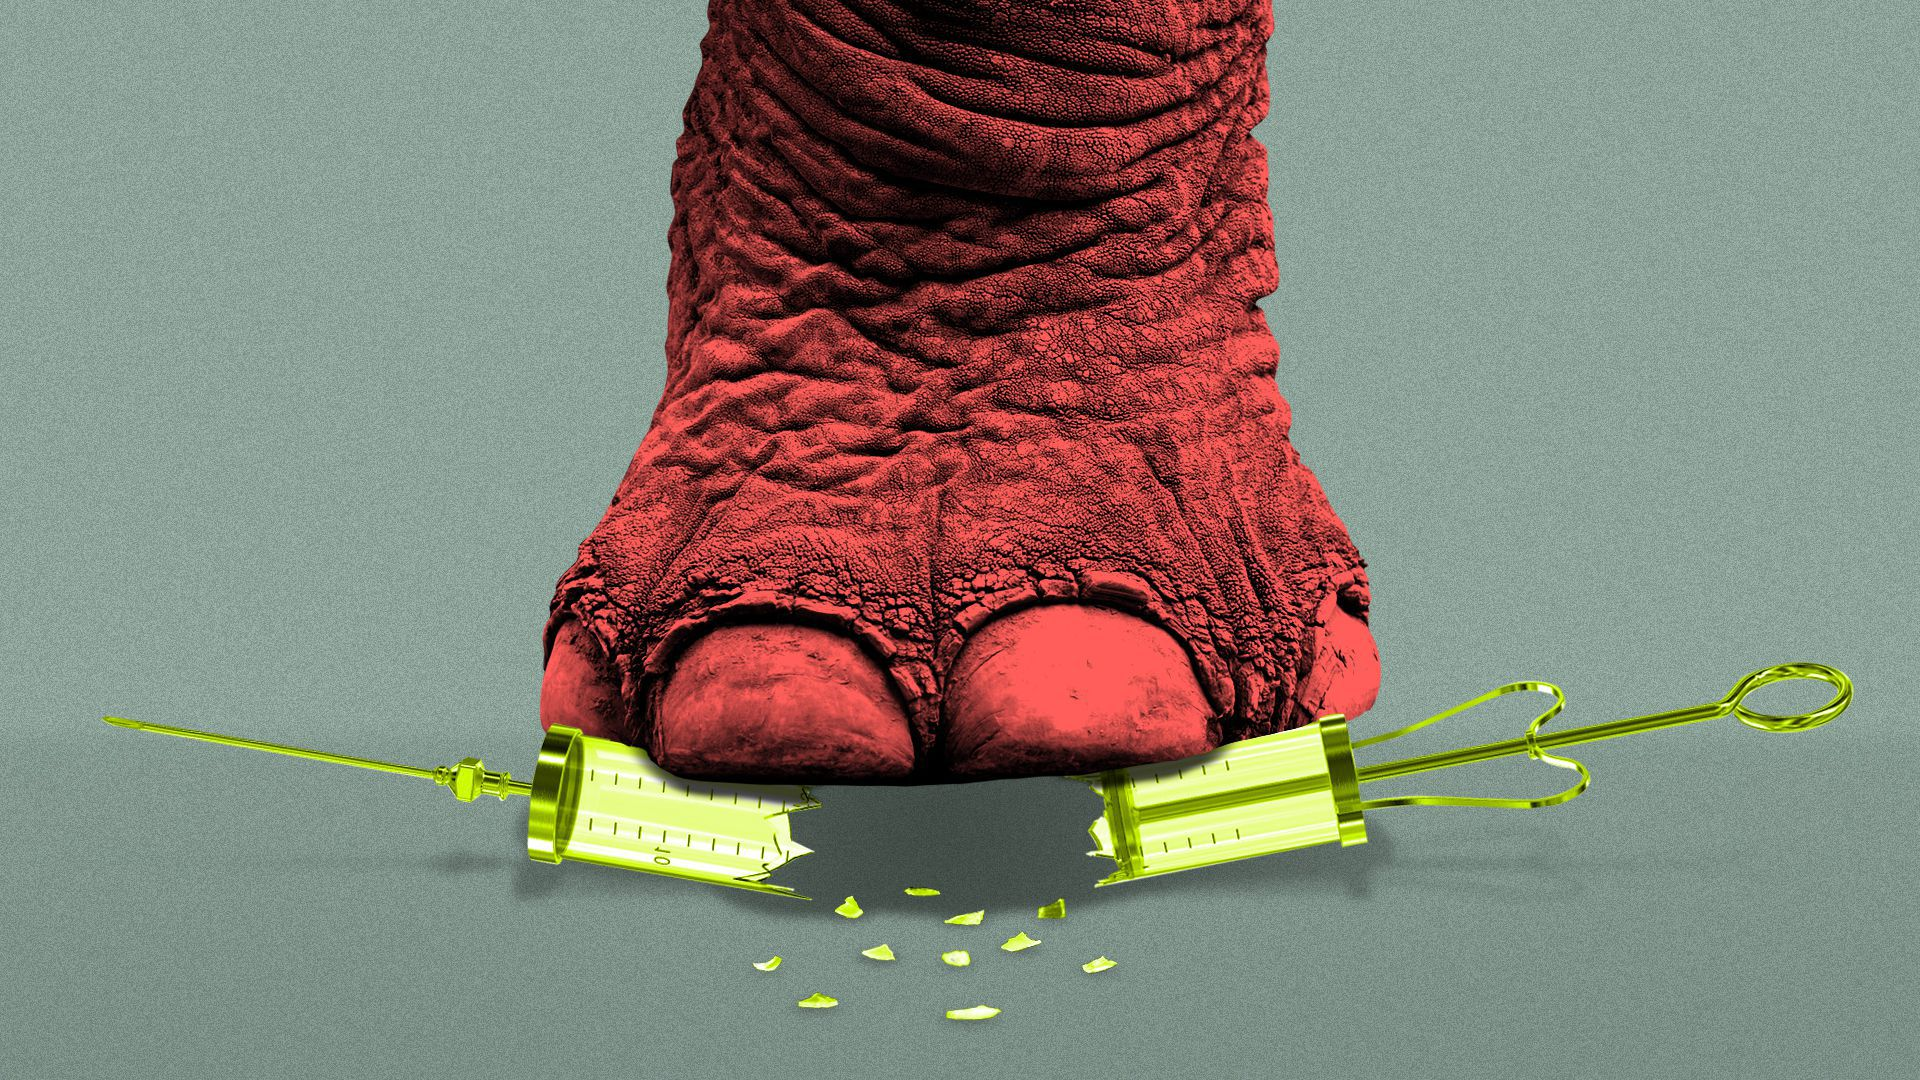 Illustration of a syringe being crushed by an elephant's foot.